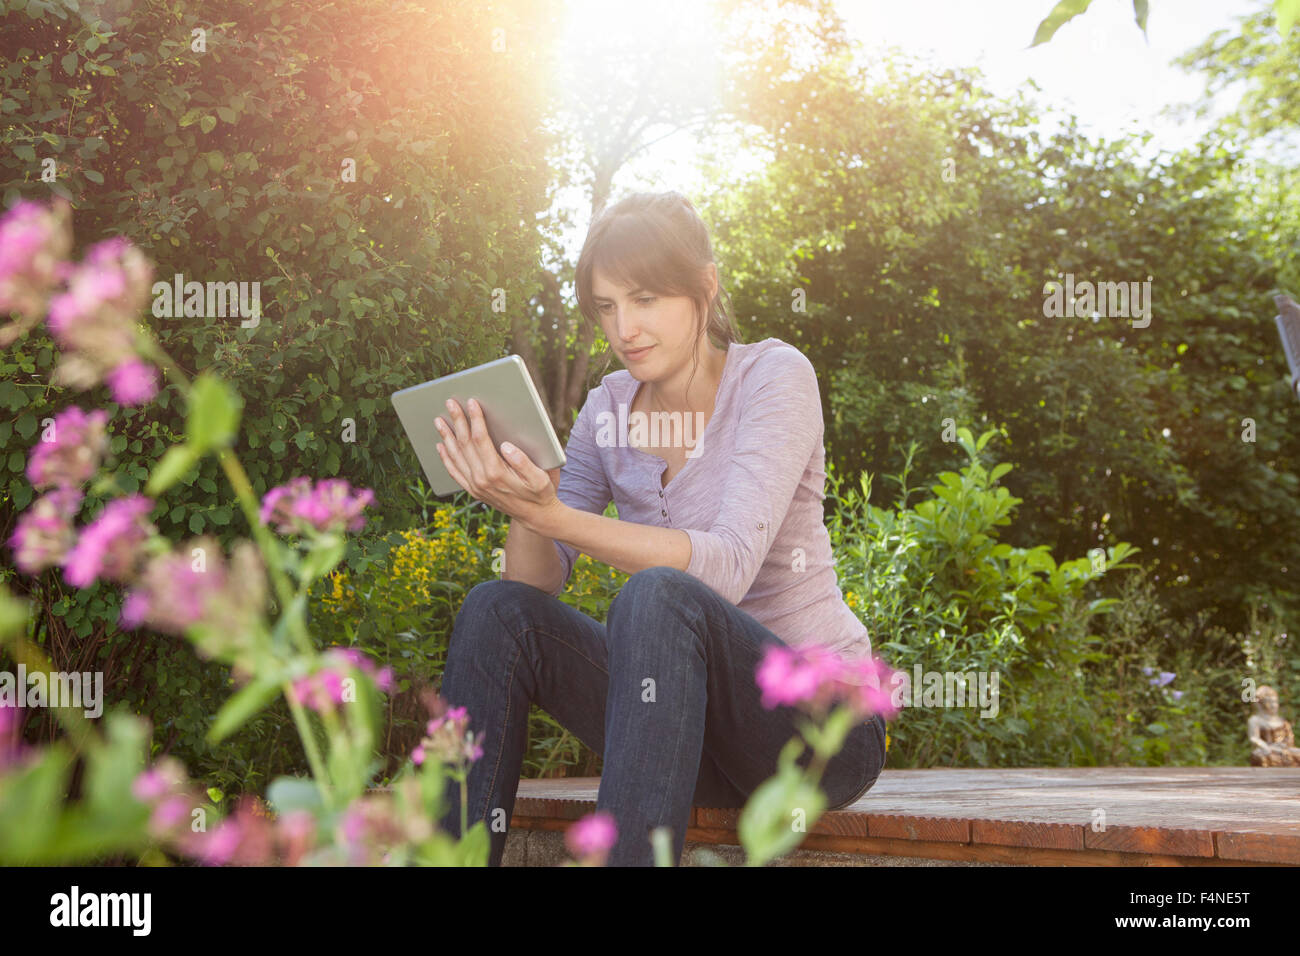 Woman sitting in garden using digital tablet - Stock Image